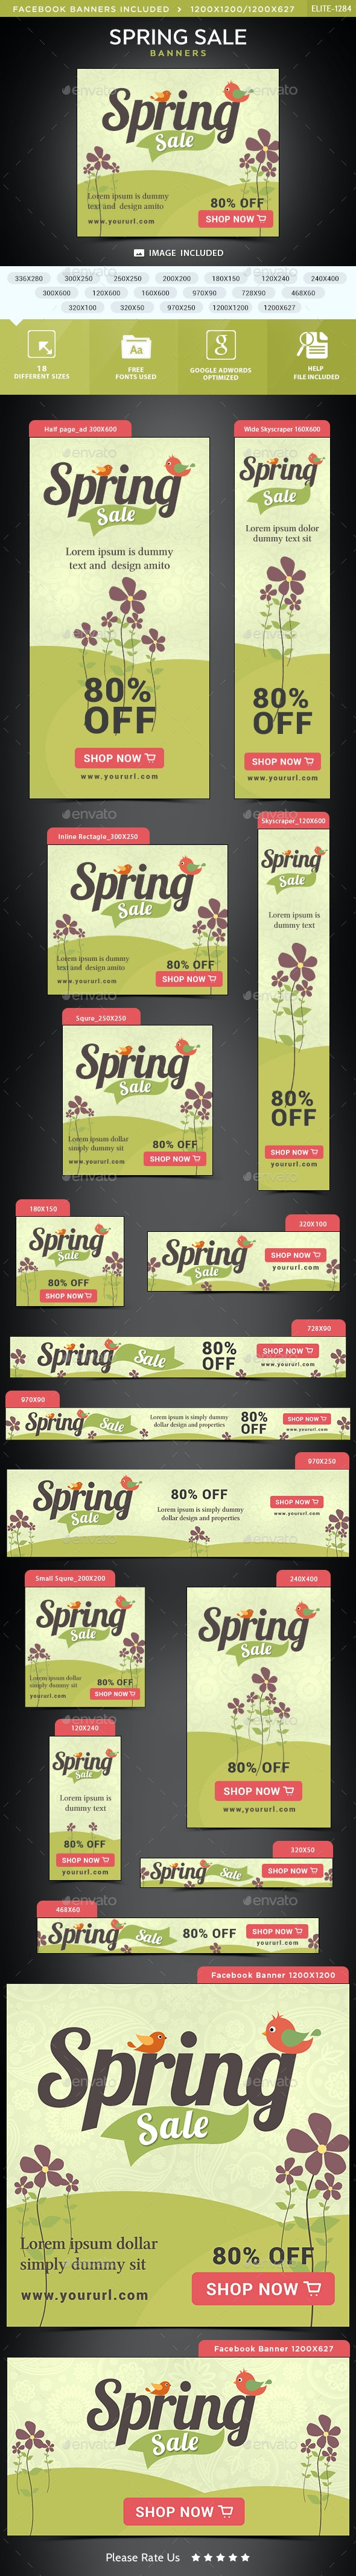 Spring Sale Banners - Banners & Ads Web Elements